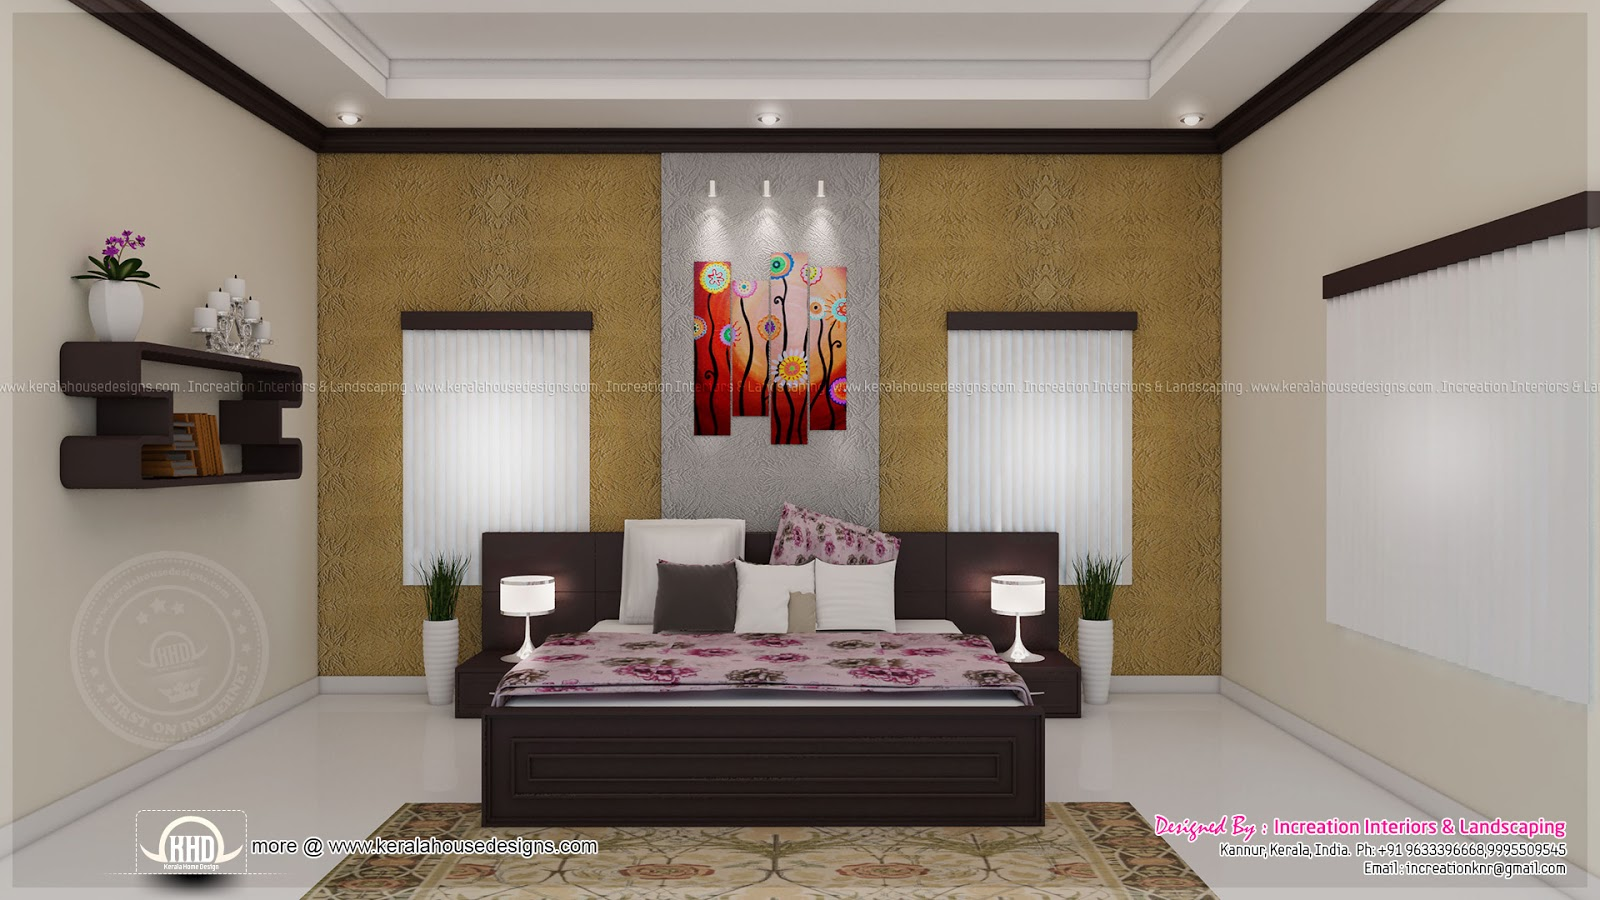 House interior ideas in 3d rendering kerala home design and floor plans Home design ideas for bedrooms